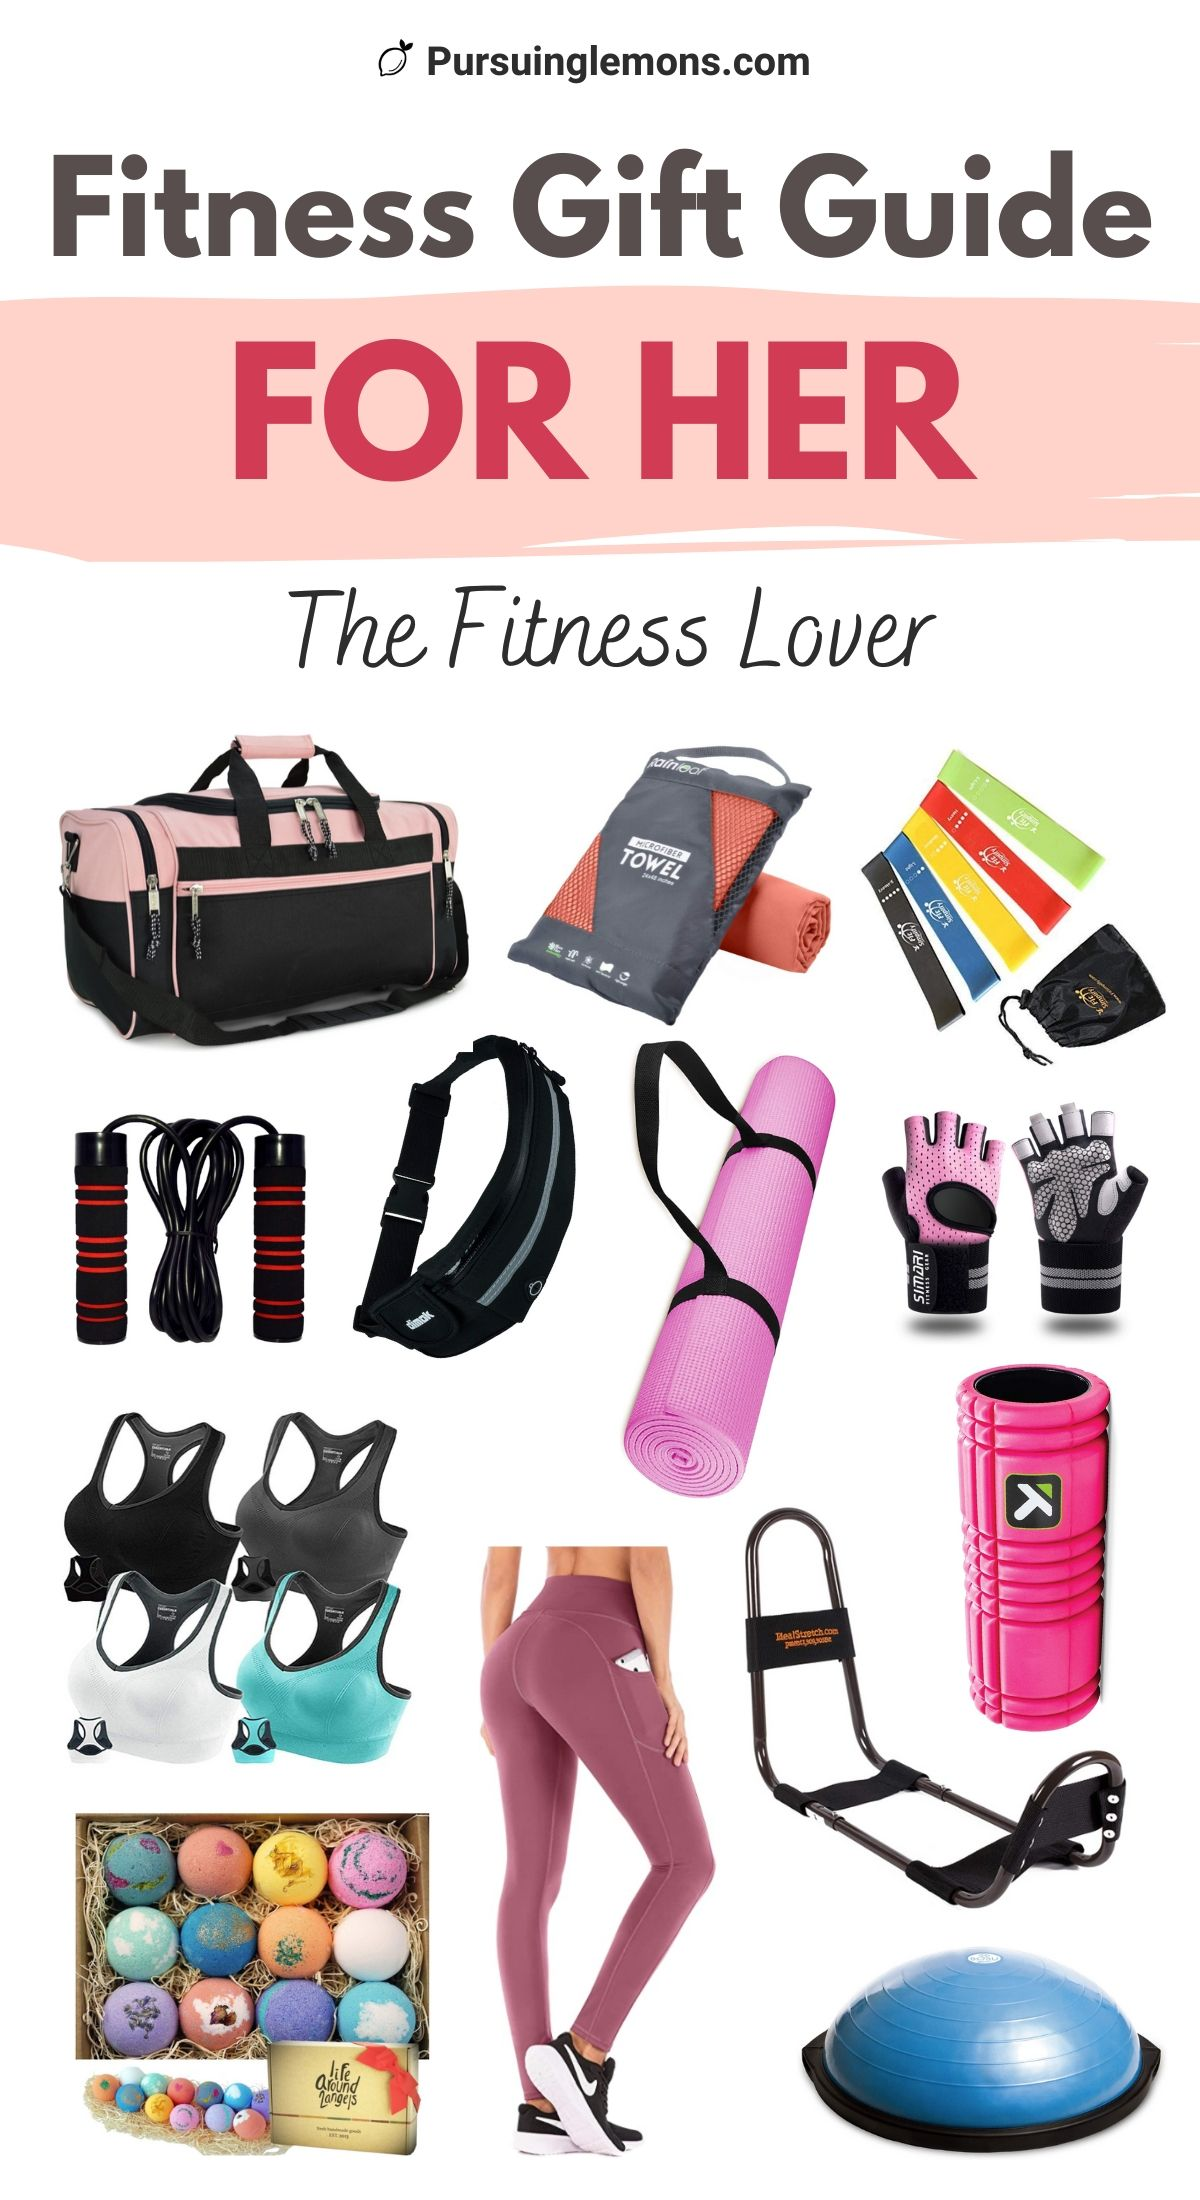 The Best List Of Fitness Gift Ideas For Her | This is an ultimate fitness gift guide for her. These are great fitness gift ideas for fitness lovers who love to workout. Find the best gift ideas for women, mother's day gift, anniversary gift, Christmas gift, or a birthday gift for your loved ones who like to exercise. If you're looking for the best fitness gift ideas for her, start with this list! #giftideasformom #fitgirlgiftideas #giftideasforher #giftideasforfitnesslovers #giftguideforher #giftideasfitnesswomen  #giftguideformom